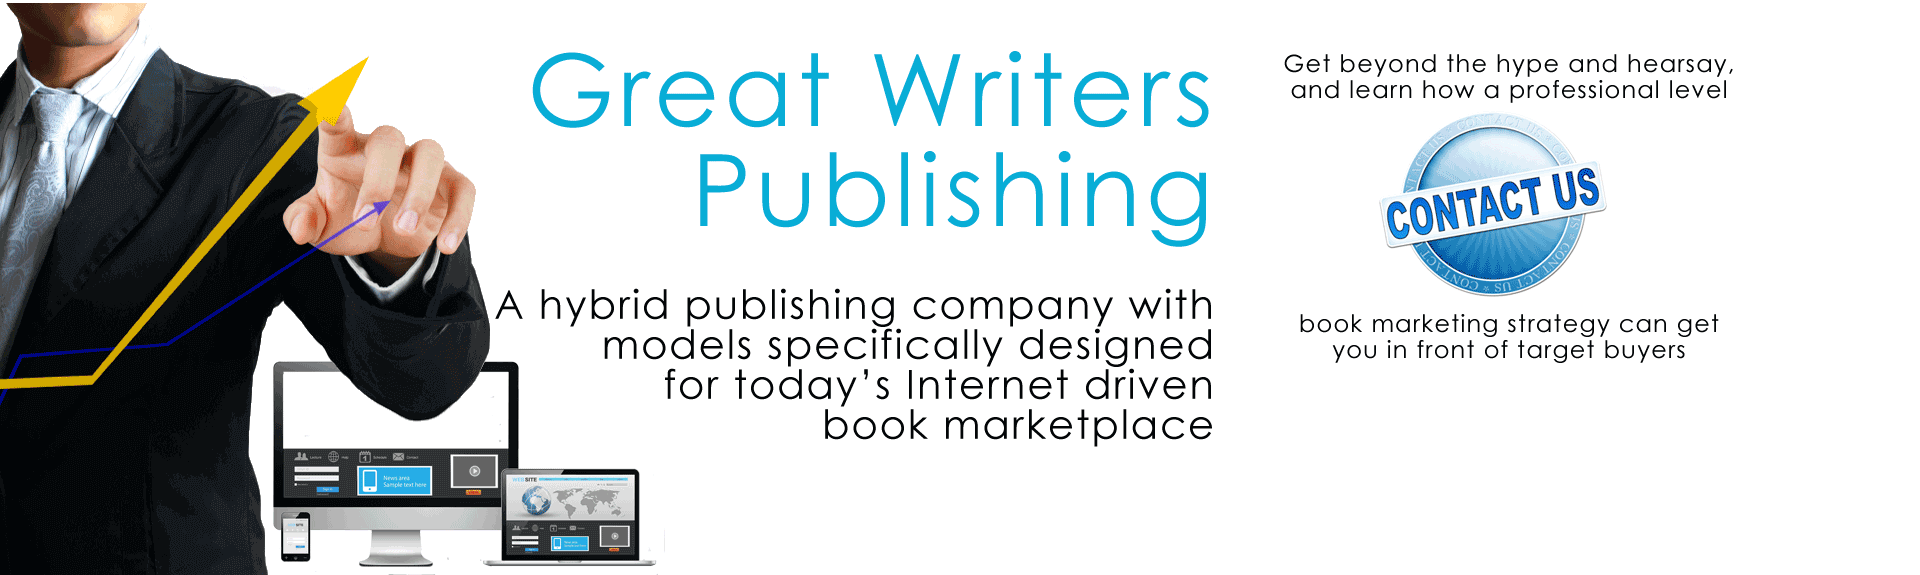 Great Writers Publishing 5